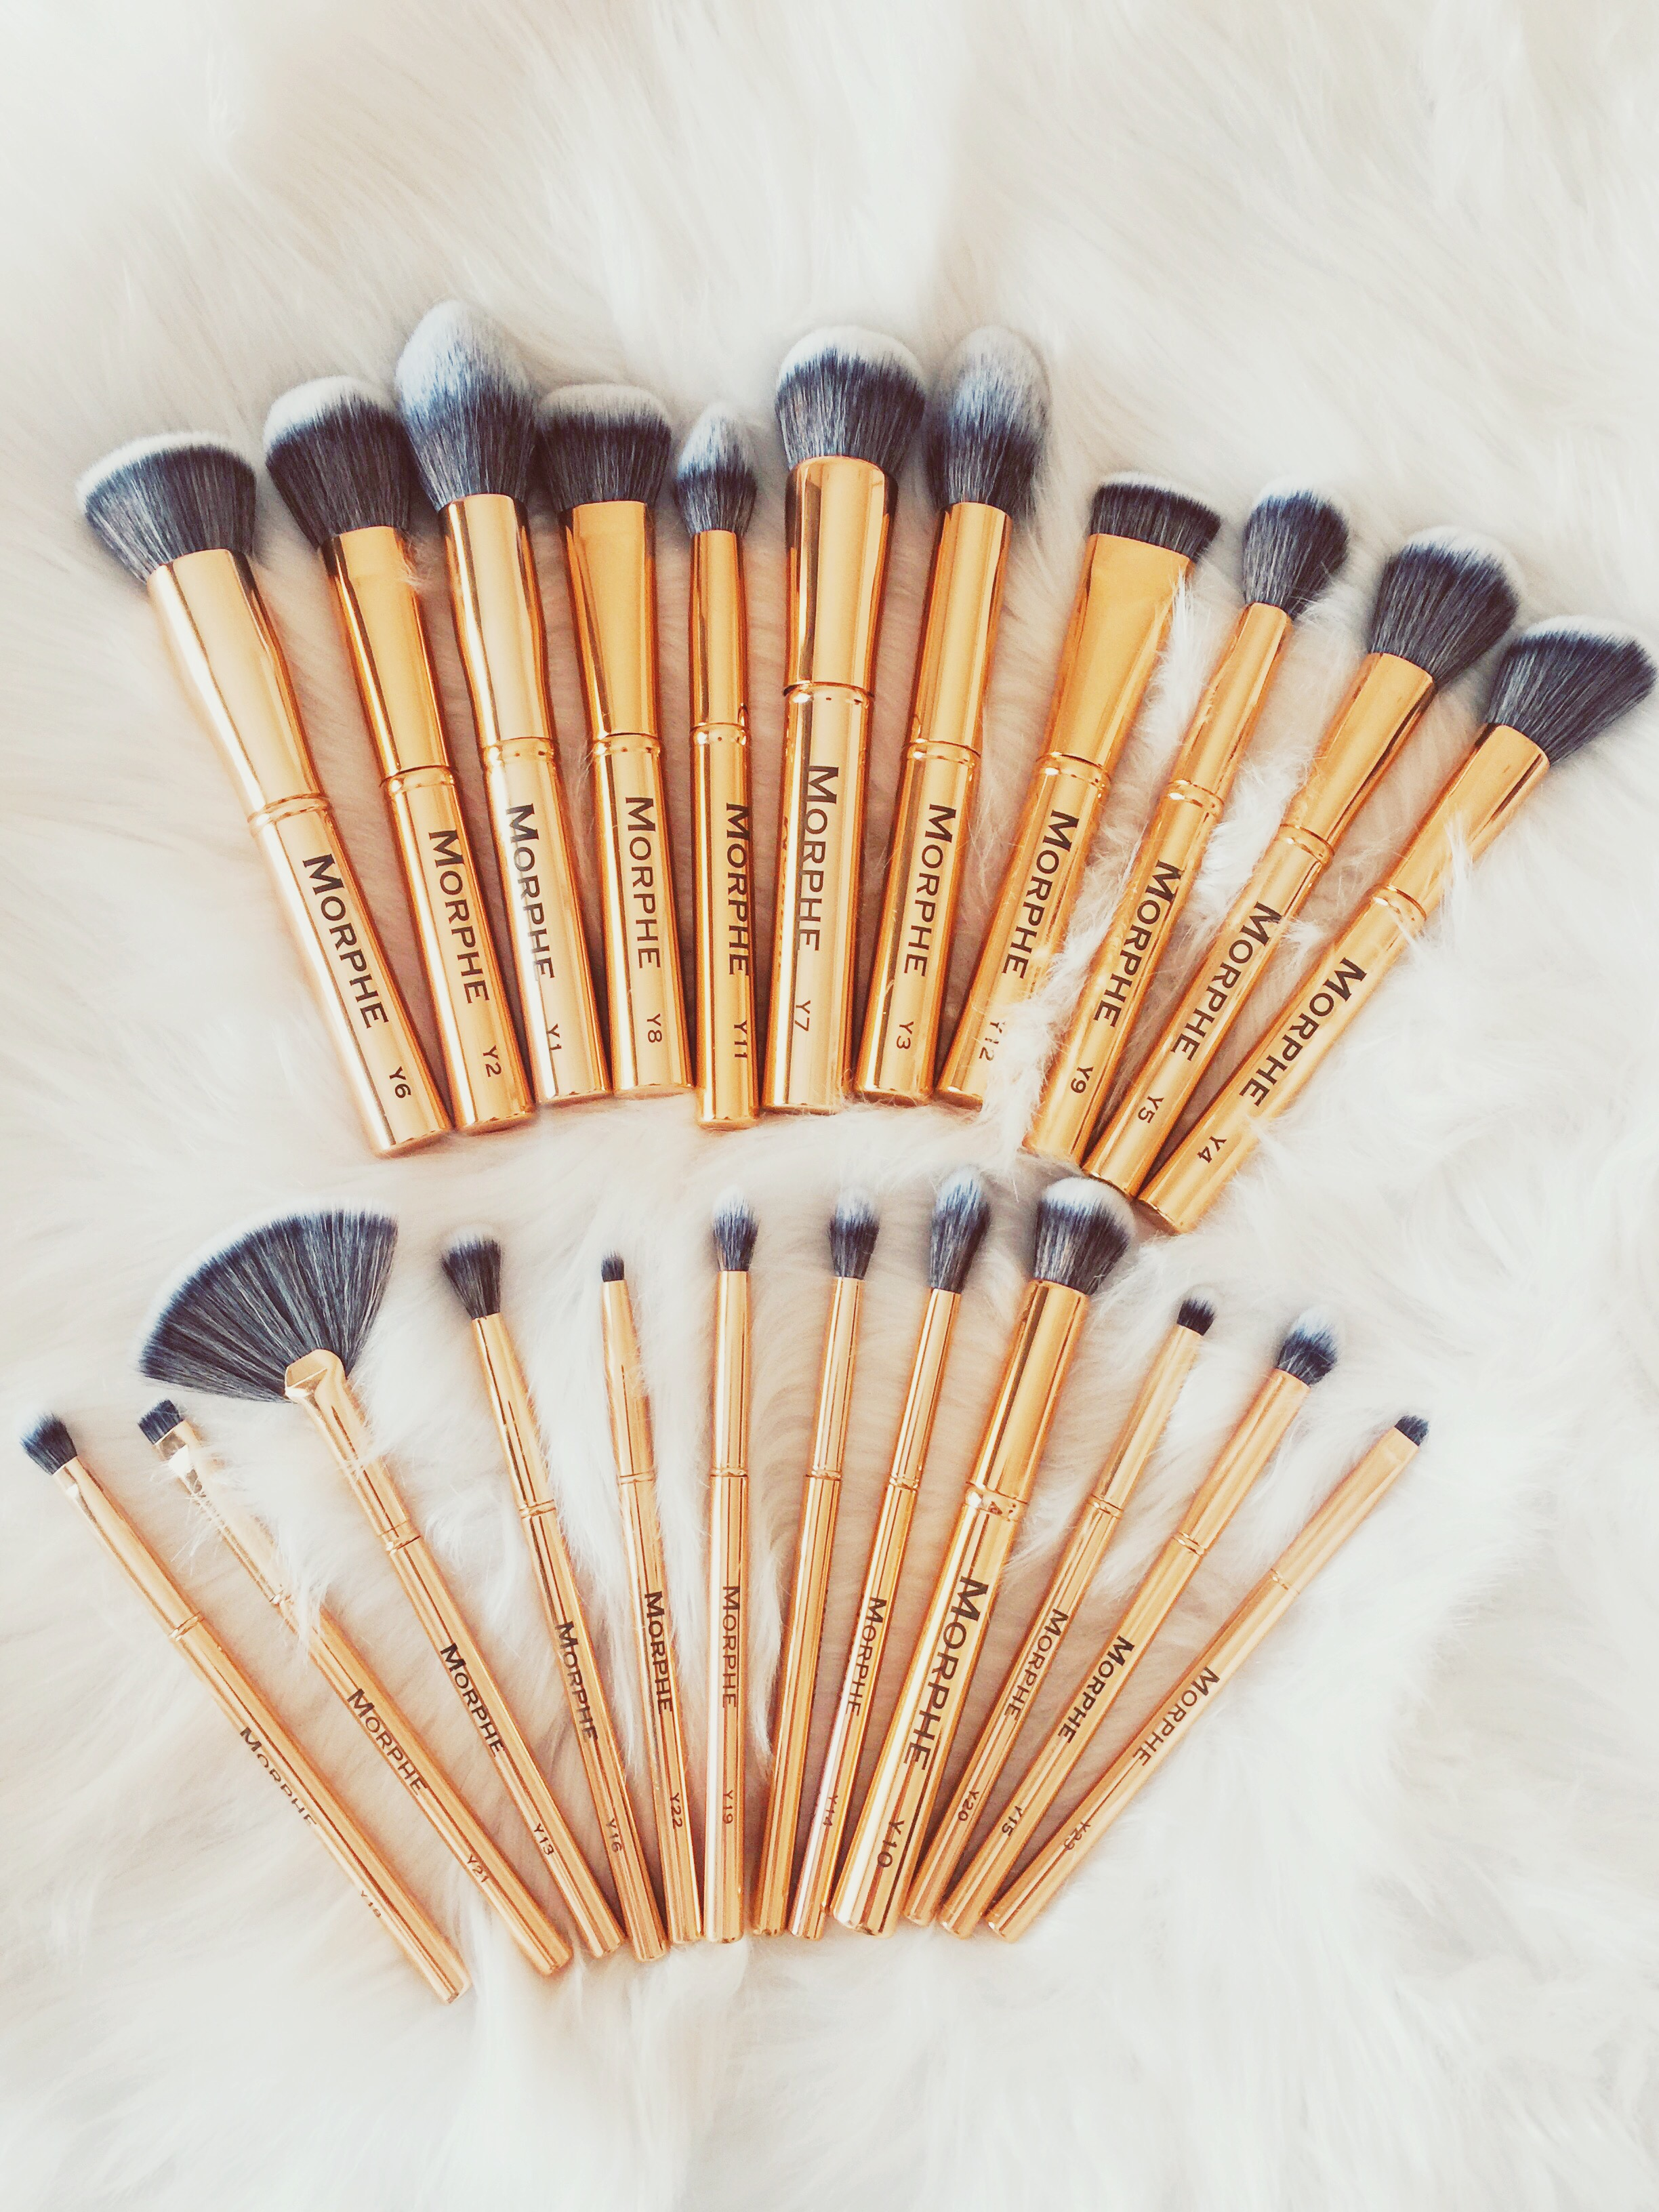 My New Morphy Brushes Review Chic Rory